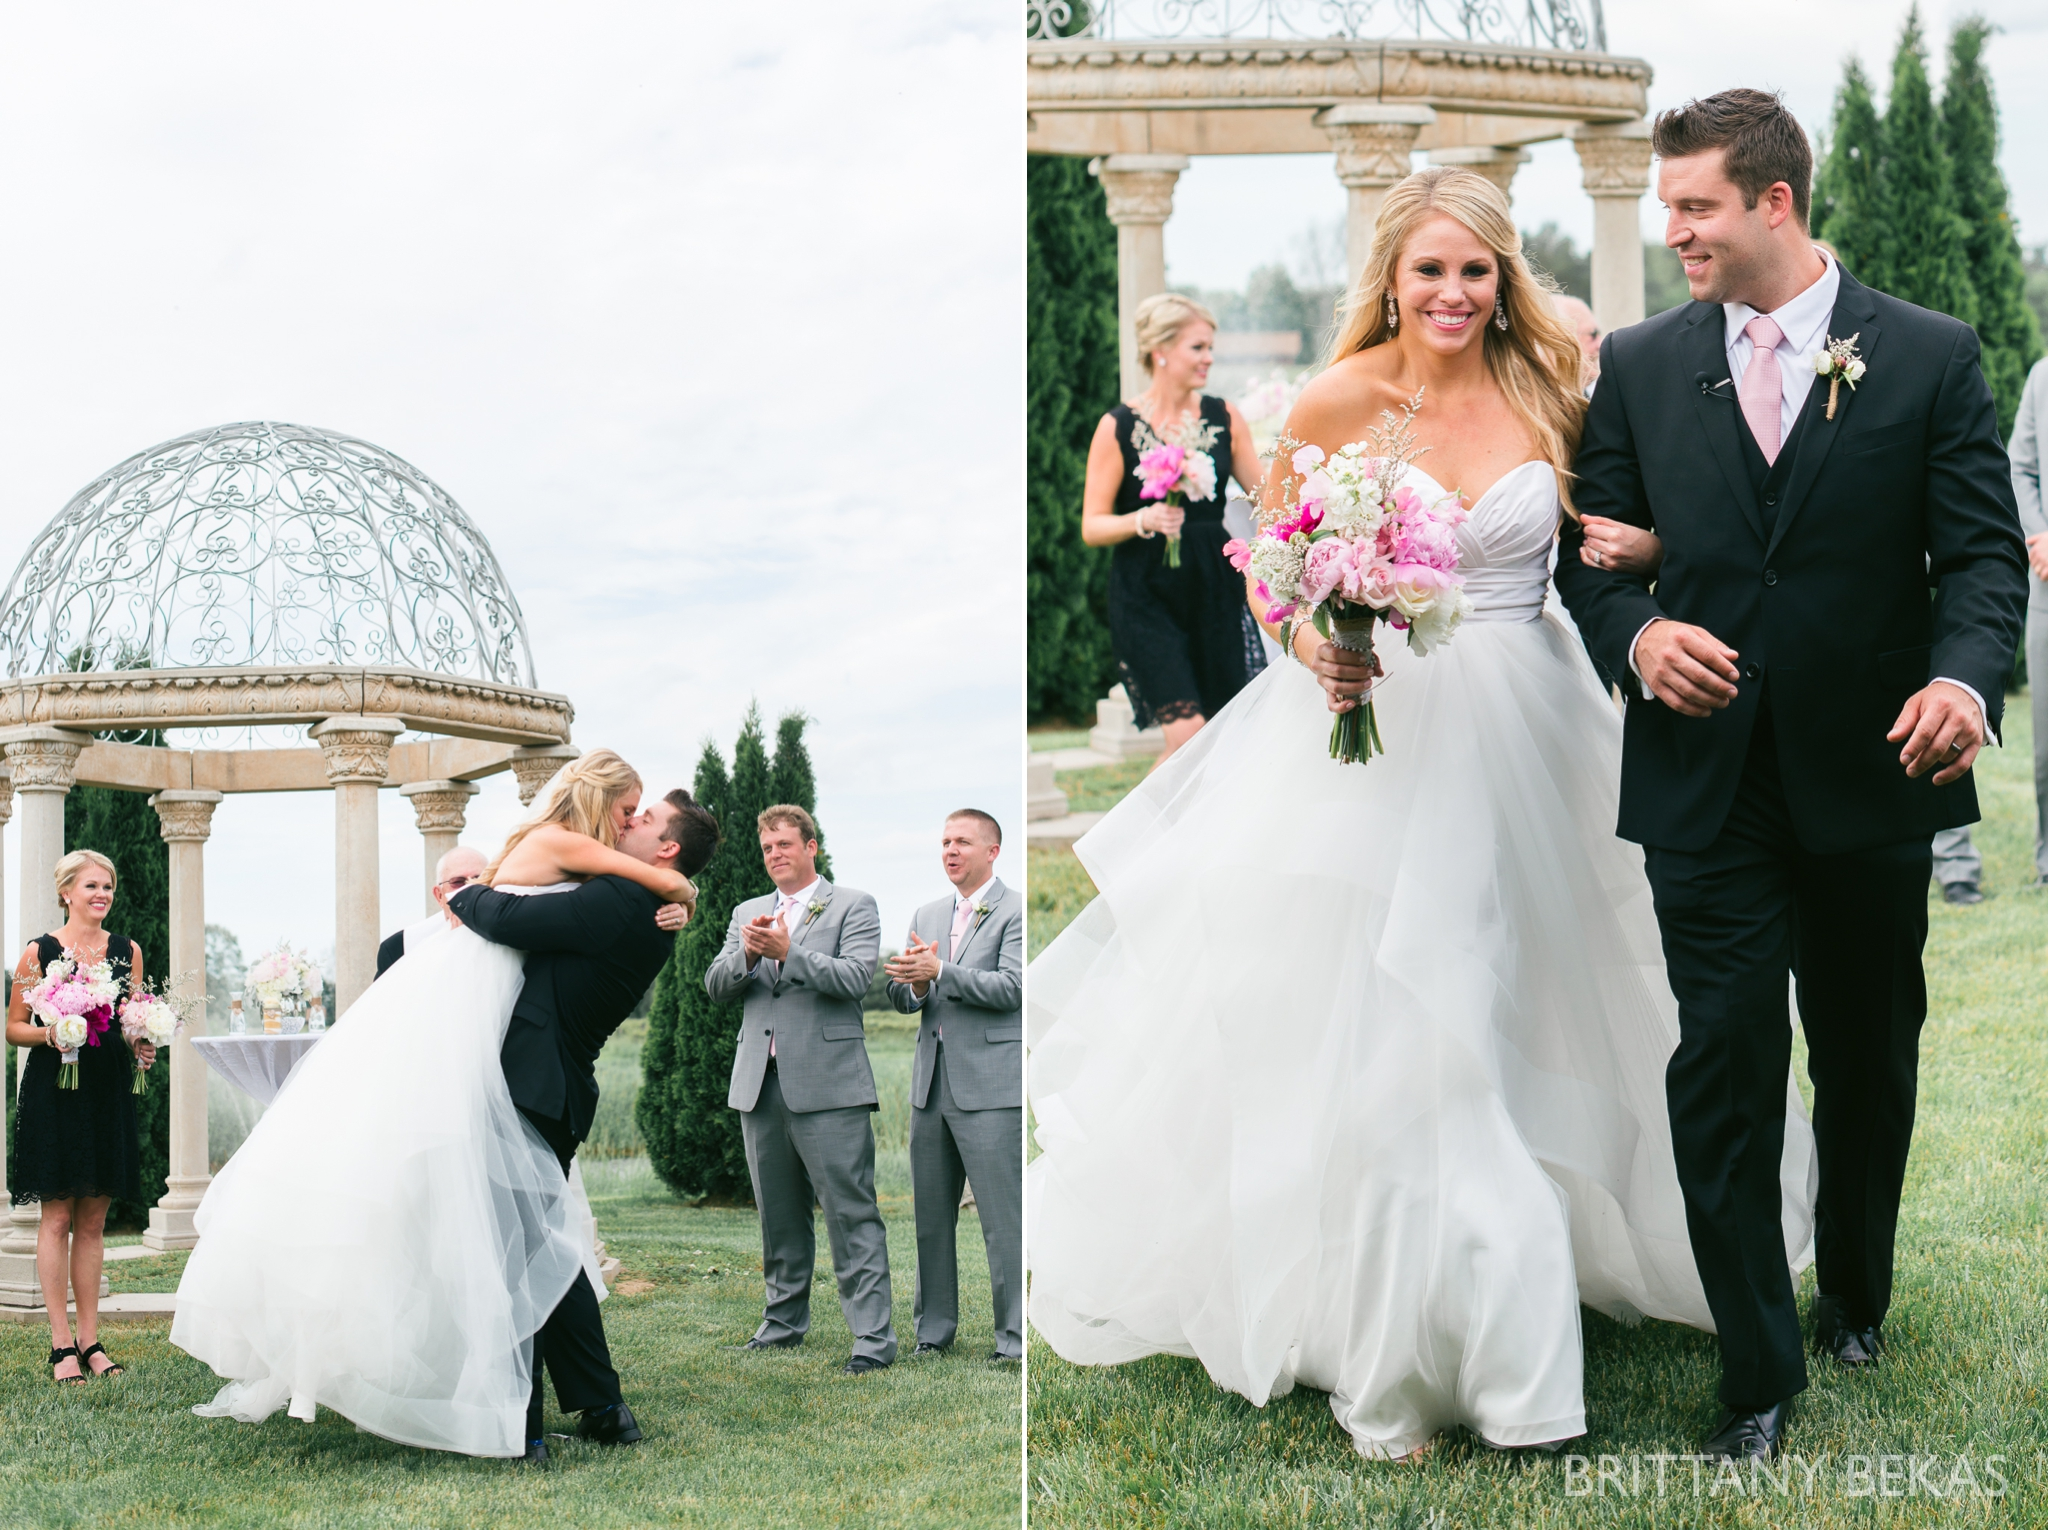 New Buffalo Wedding - Willow Harbor Vineyards Wedding Photos - Brittany Bekas Photography_0043